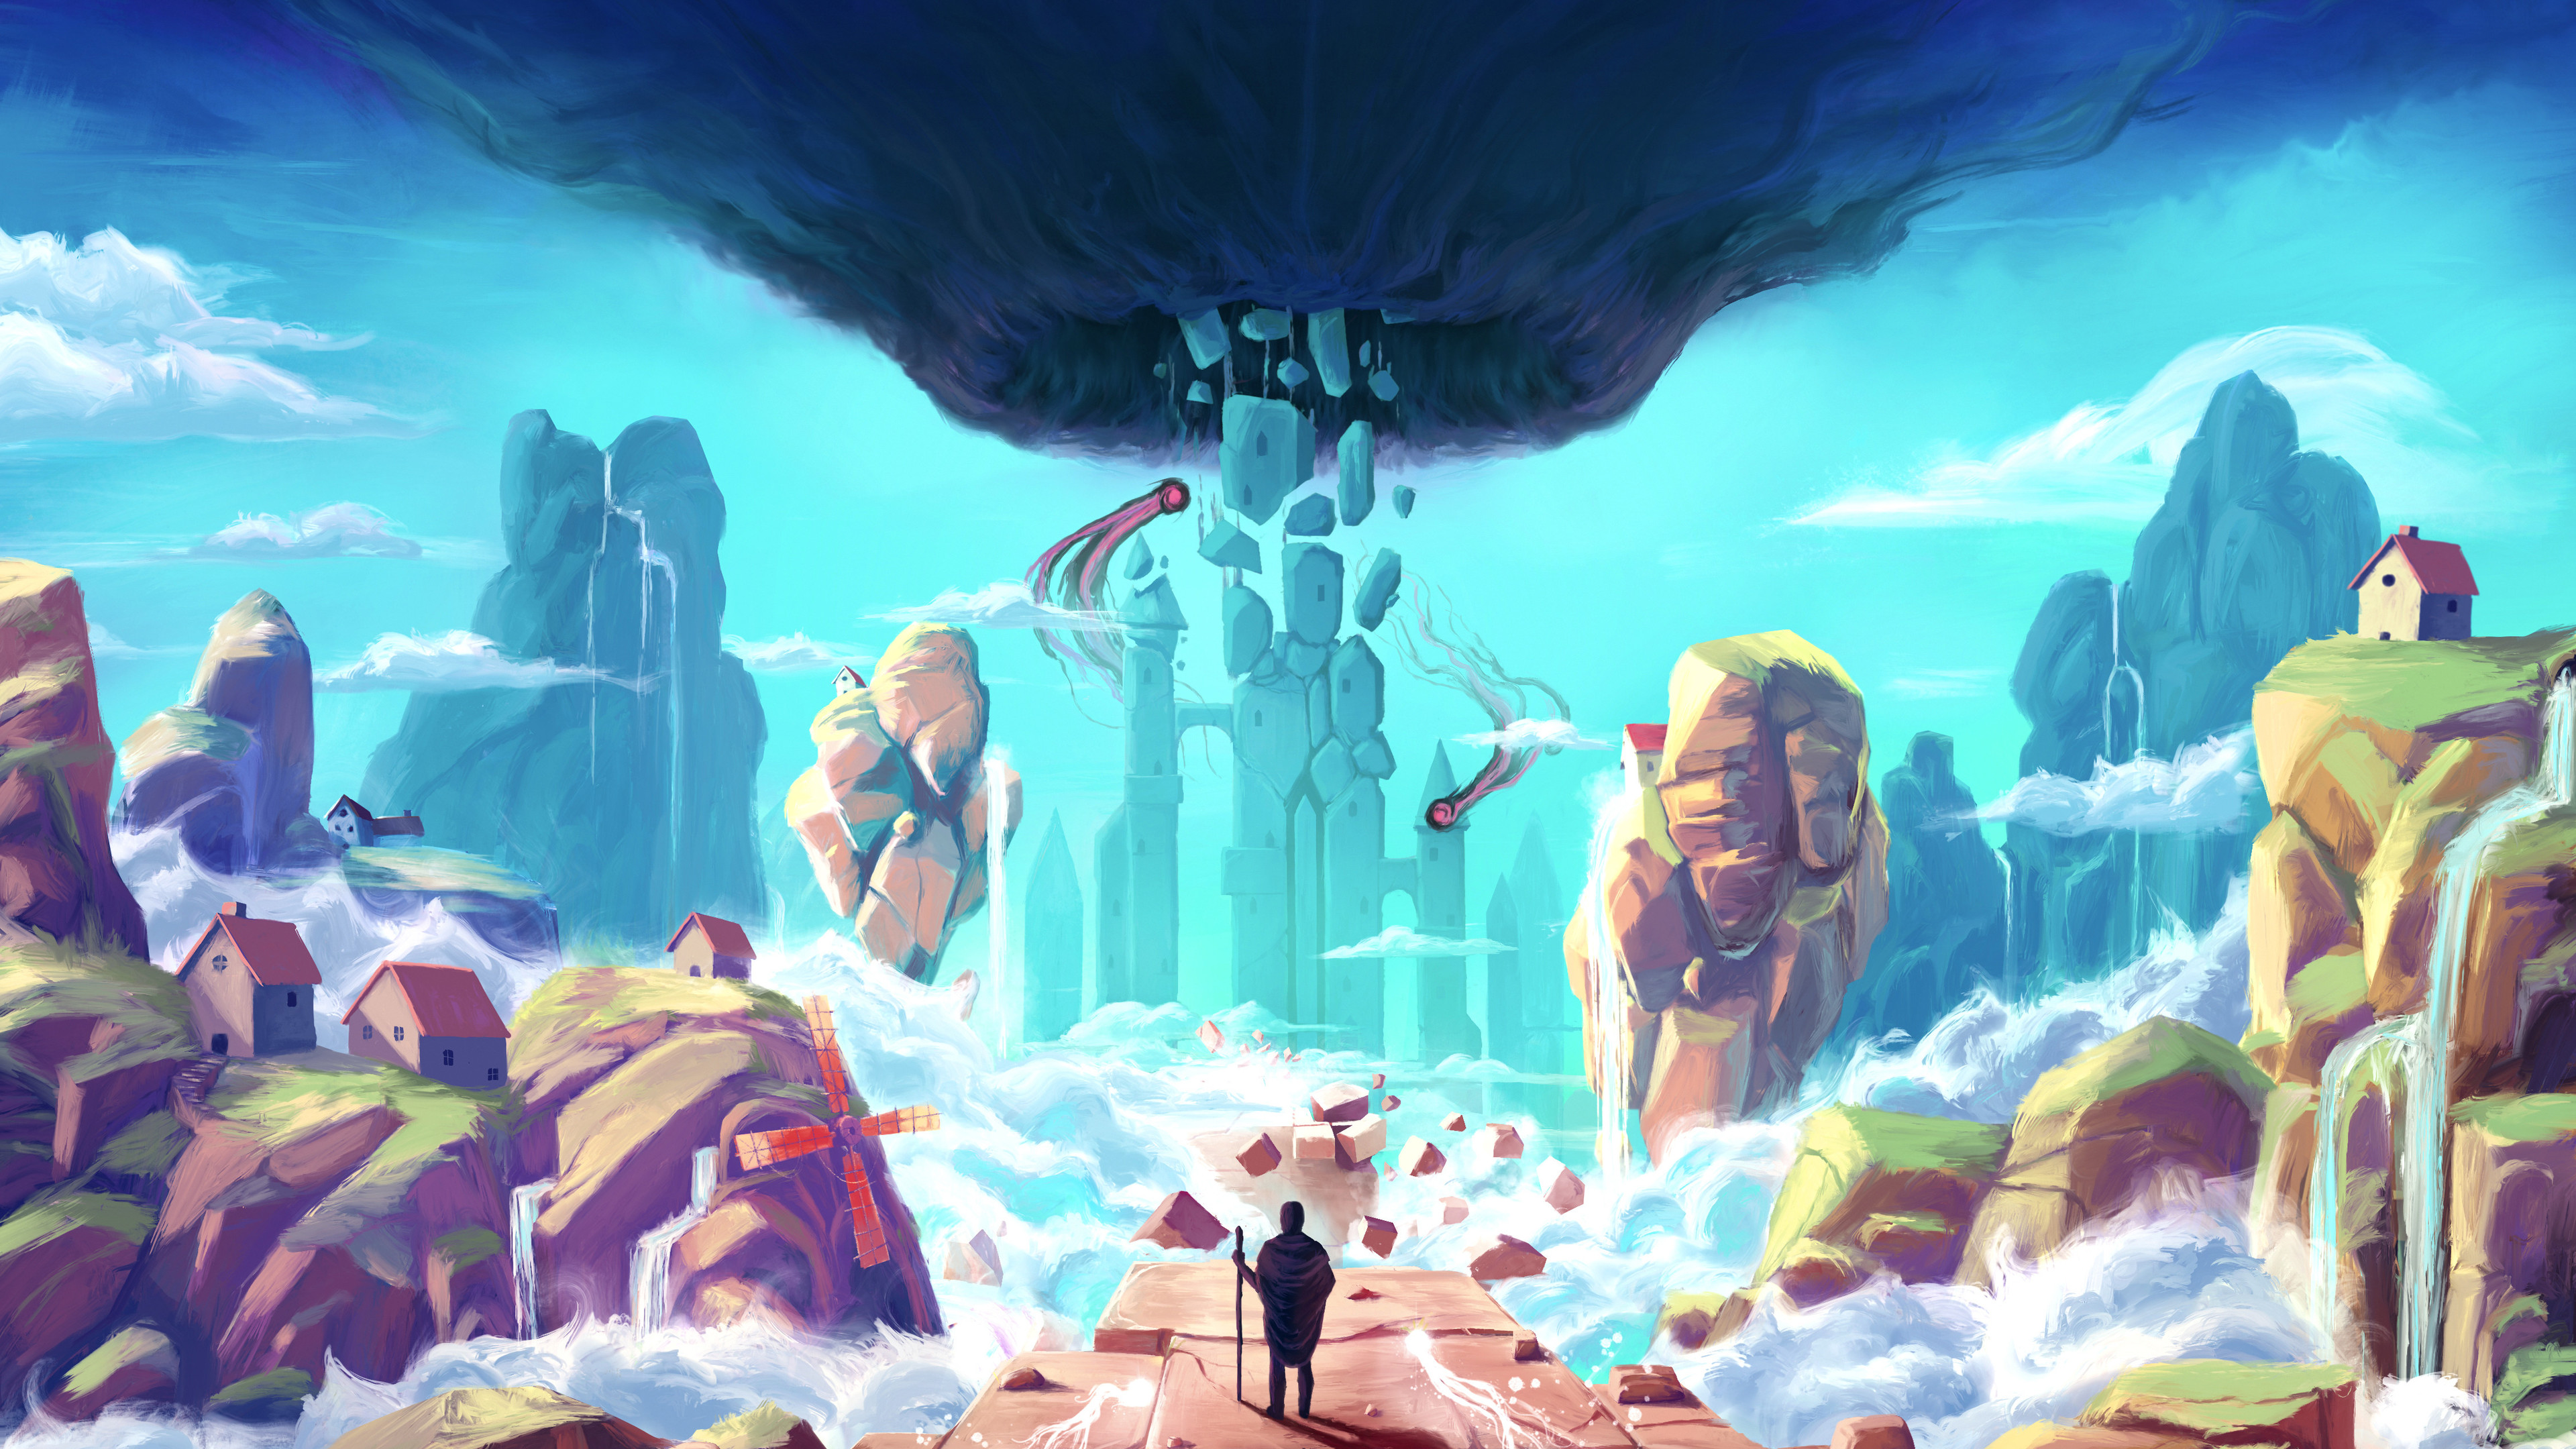 the sojourn video game key art 1537691434 - The Sojourn Video Game Key Art - the sojourn wallpapers, hd-wallpapers, games wallpapers, digital art wallpapers, artwork wallpapers, 5k wallpapers, 4k-wallpapers, 2018 games wallpapers